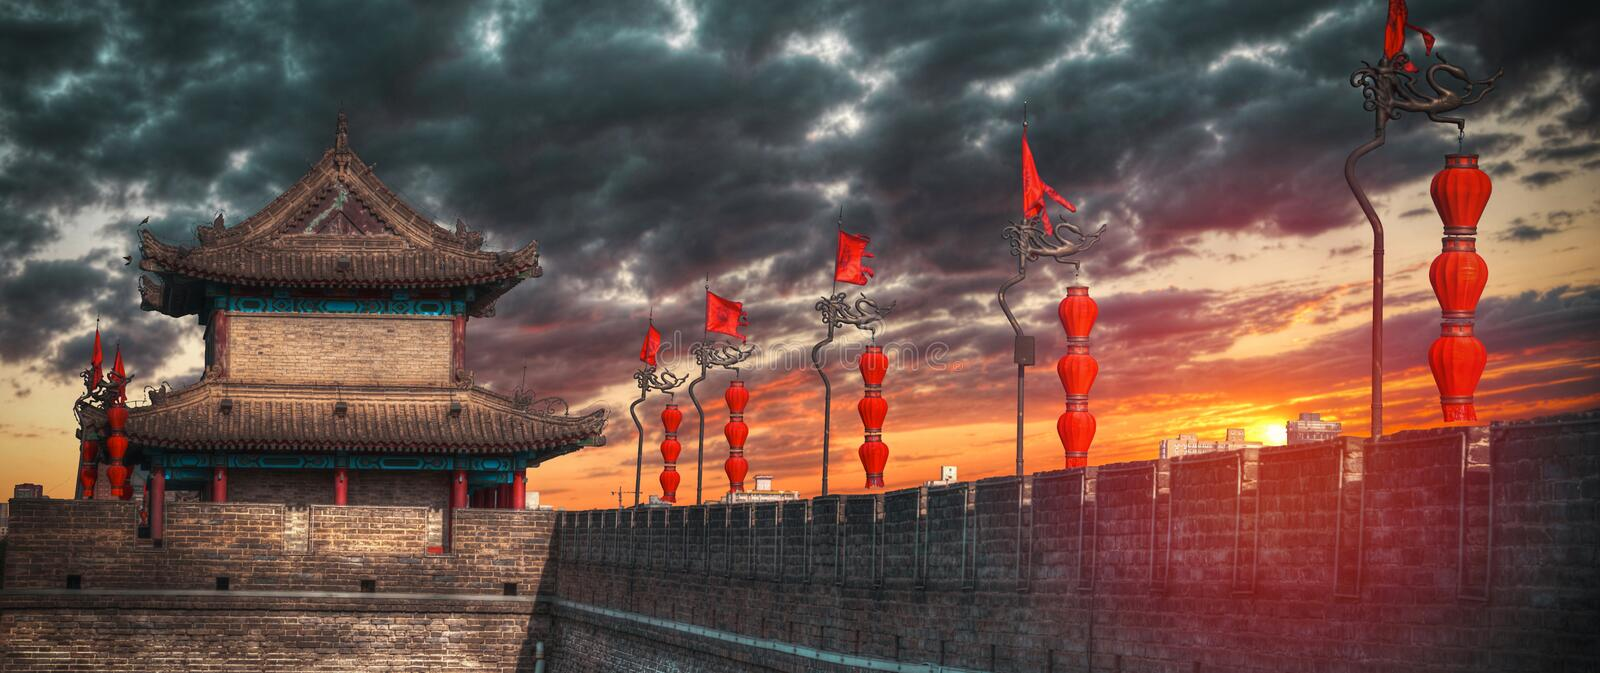 City wall of Xian. The city wall in around the old Xian. China royalty free stock images